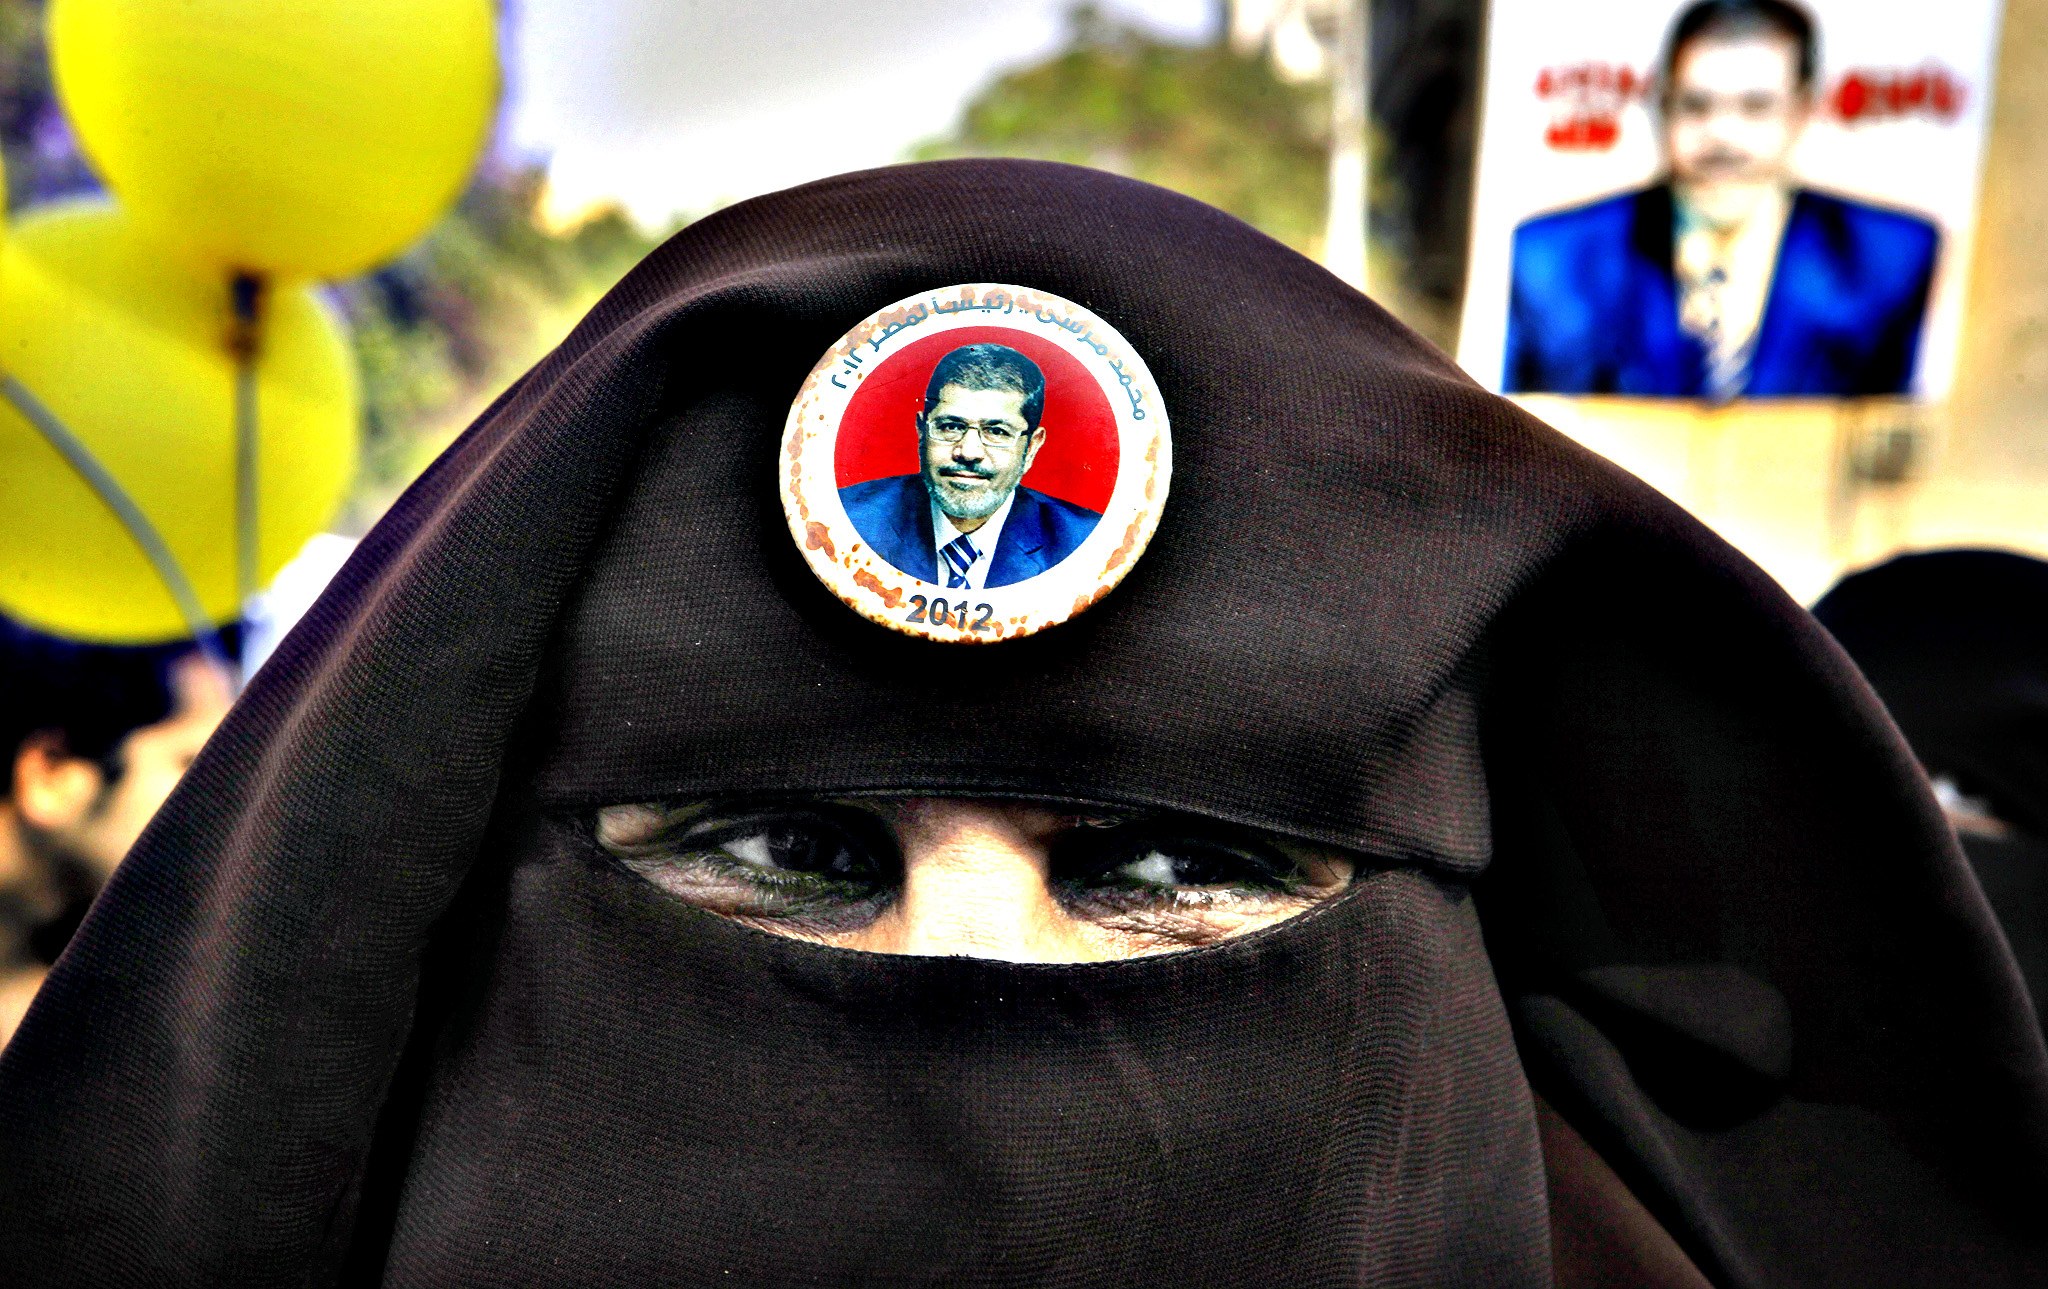 "A supporter of Egypt's ousted President Mohammed Morsi wears a button showing Morsi and a slogan in Arabic that reads, ""Morsi for Egyptian presidency 2012,"" during a protest in Cairo, Egypt, Friday, Nov. 1, 2013. Some 20,000 police officers and soldiers will guard the upcoming trial of Egypt's toppled president on Nov. 4, as Islamist opponents plan massive protests that may spark more turmoil in the country."